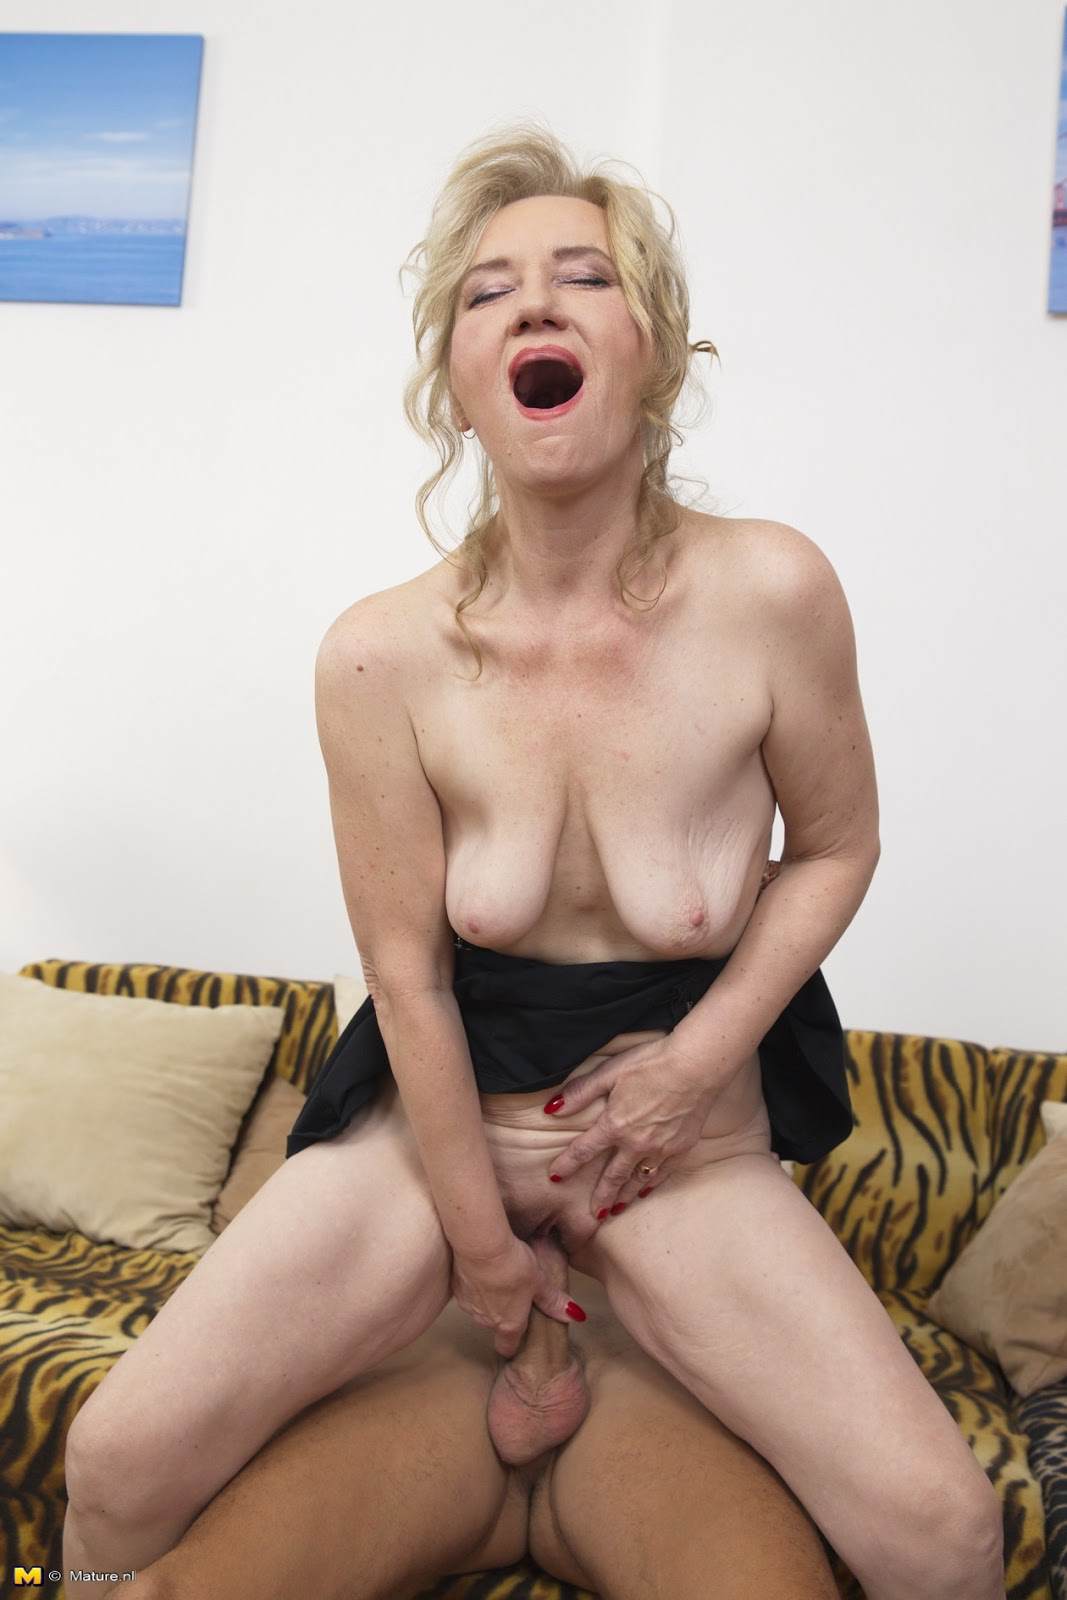 Archive Of Old Women New Hardcore Mature Pics  Video-9438